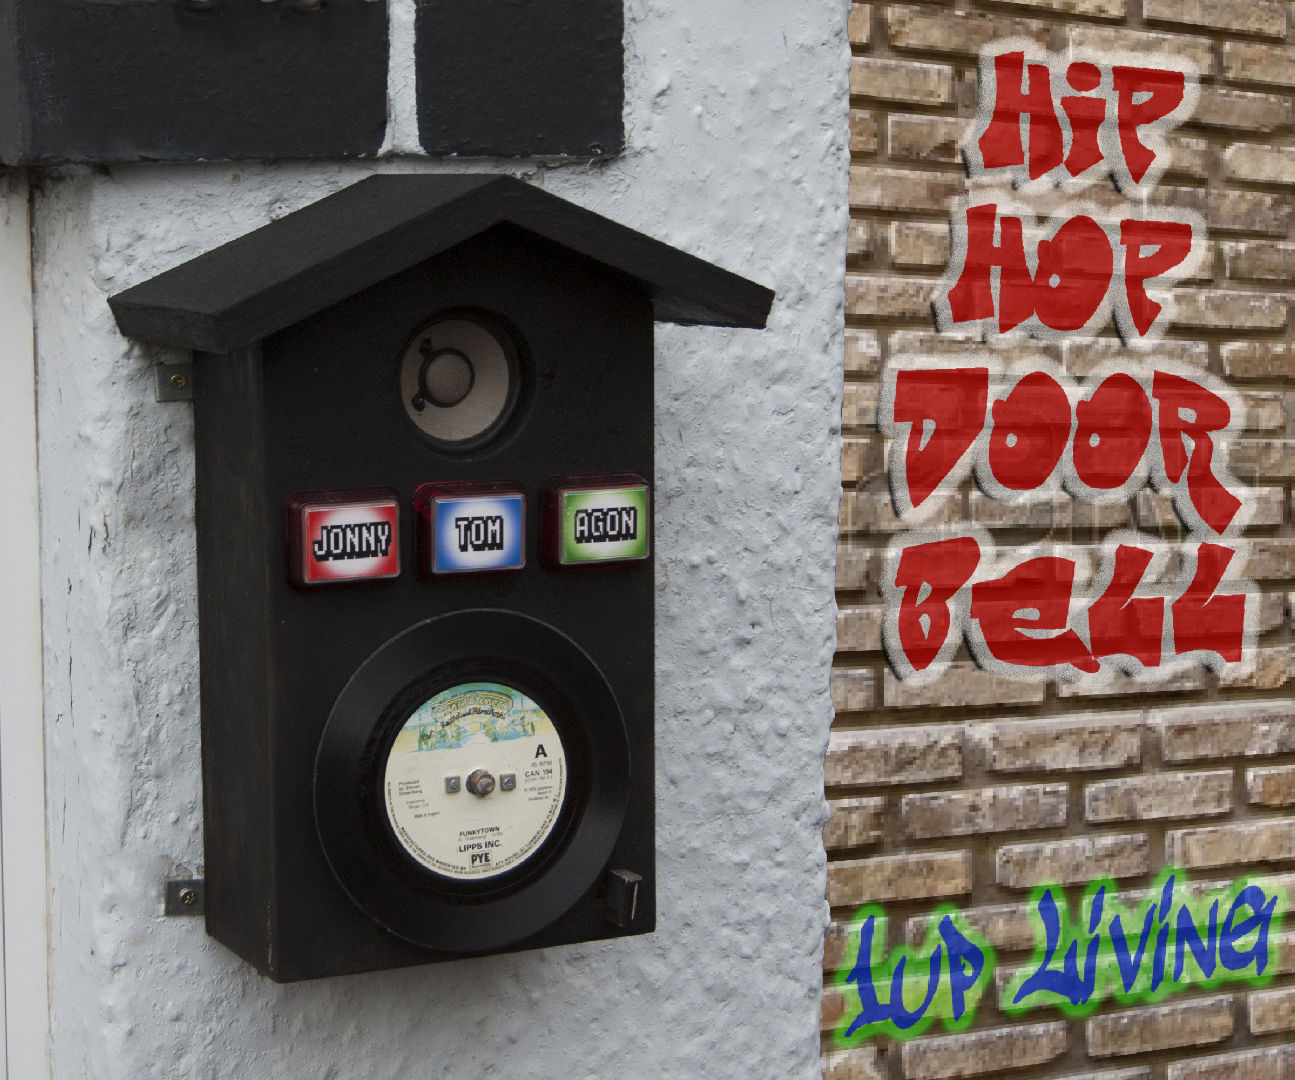 The Hip Hop Door Bell